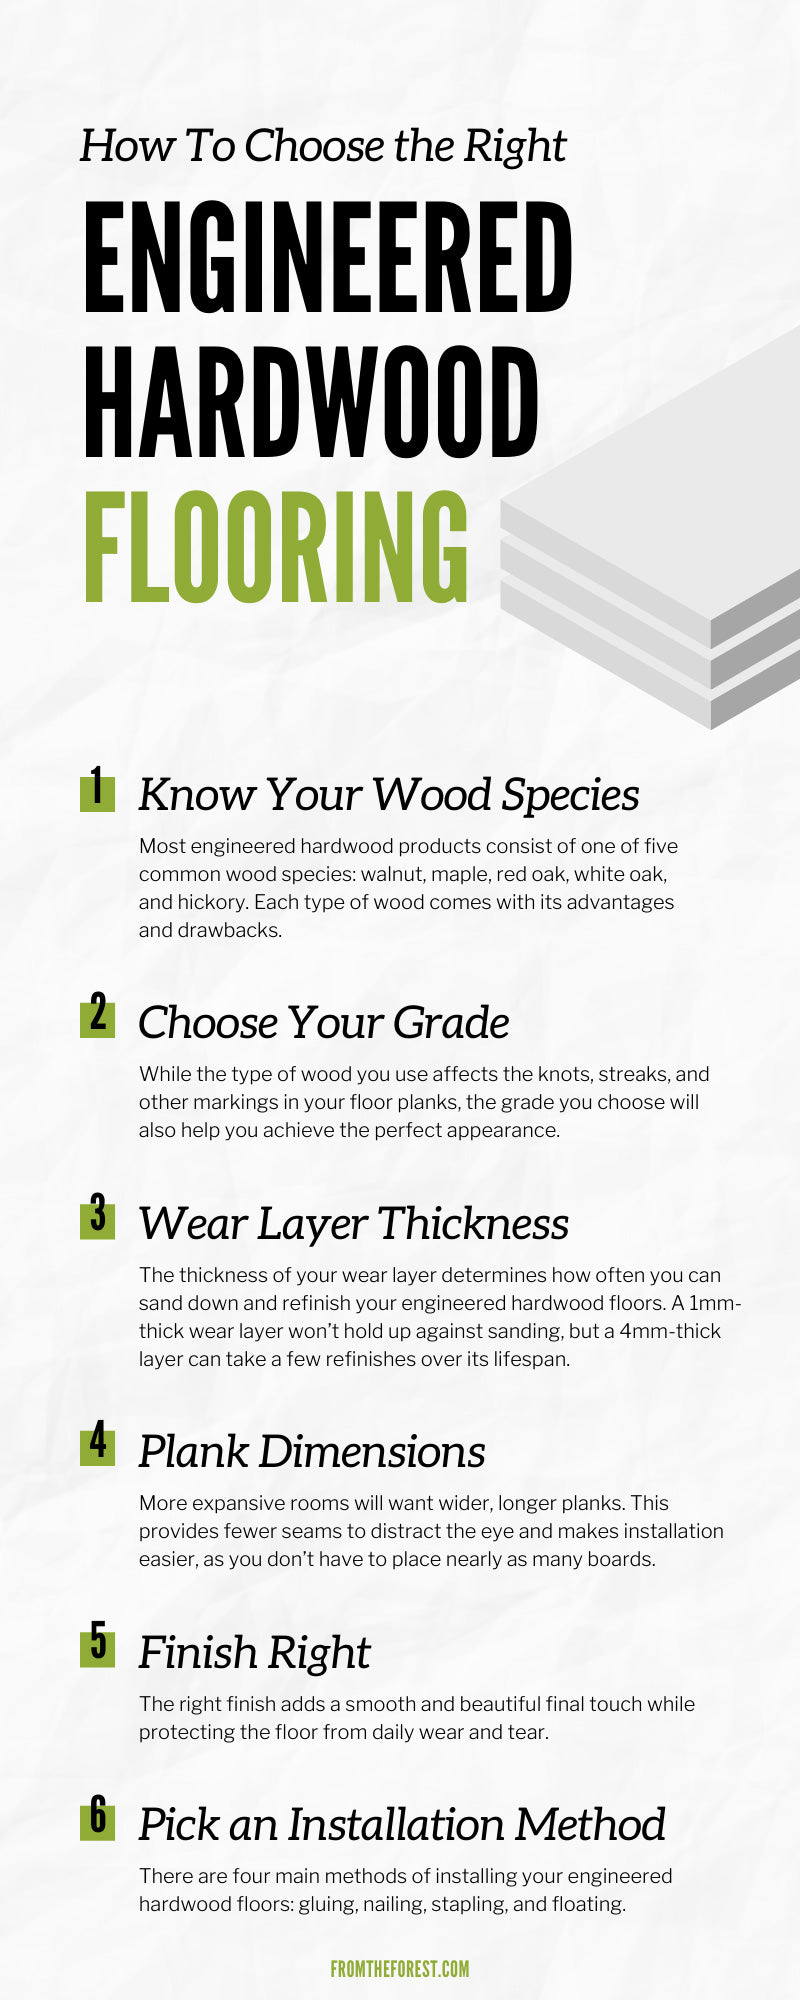 How To Choose the Right Engineered Hardwood Flooring